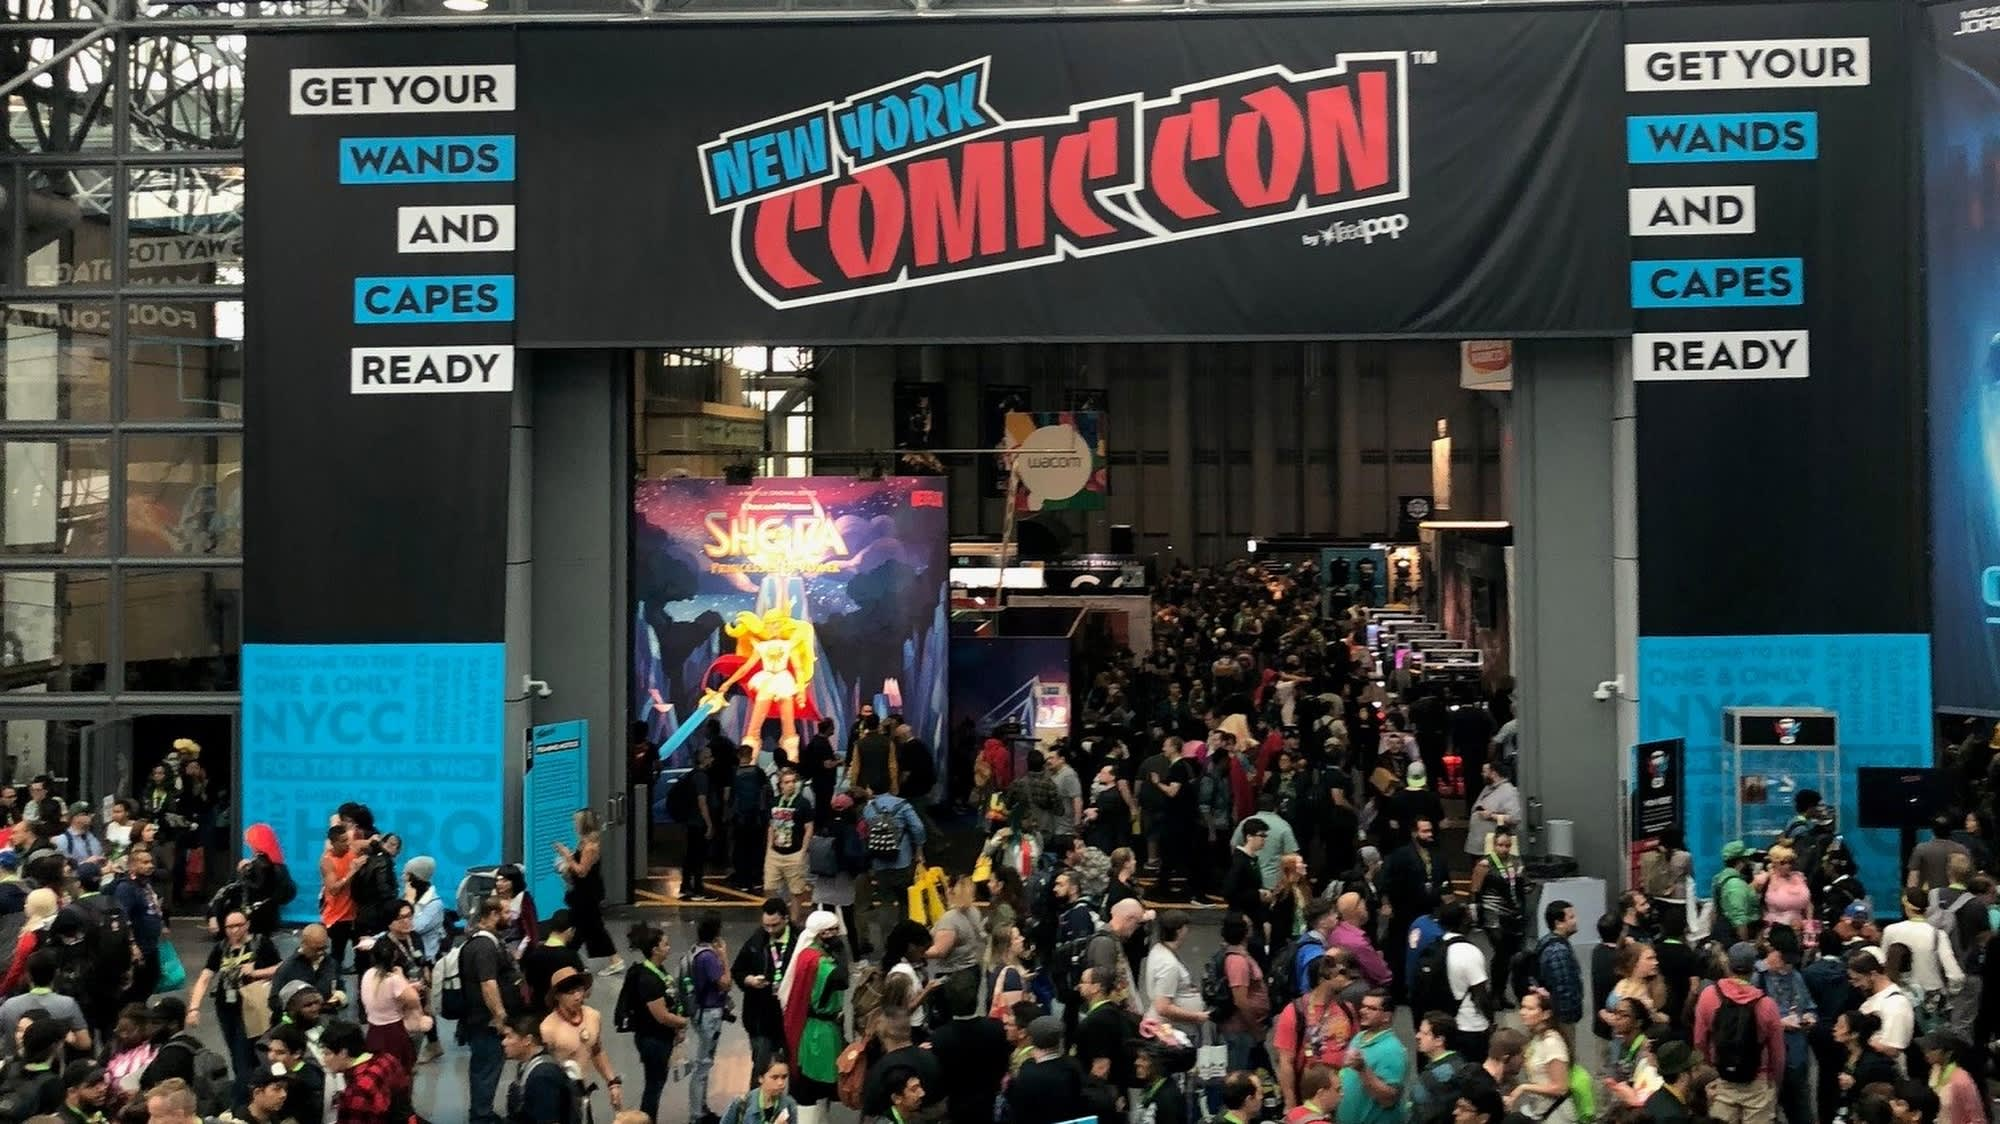 New York Comic Con Is Bigger Than Ever Brings More Than 100m To Nyc